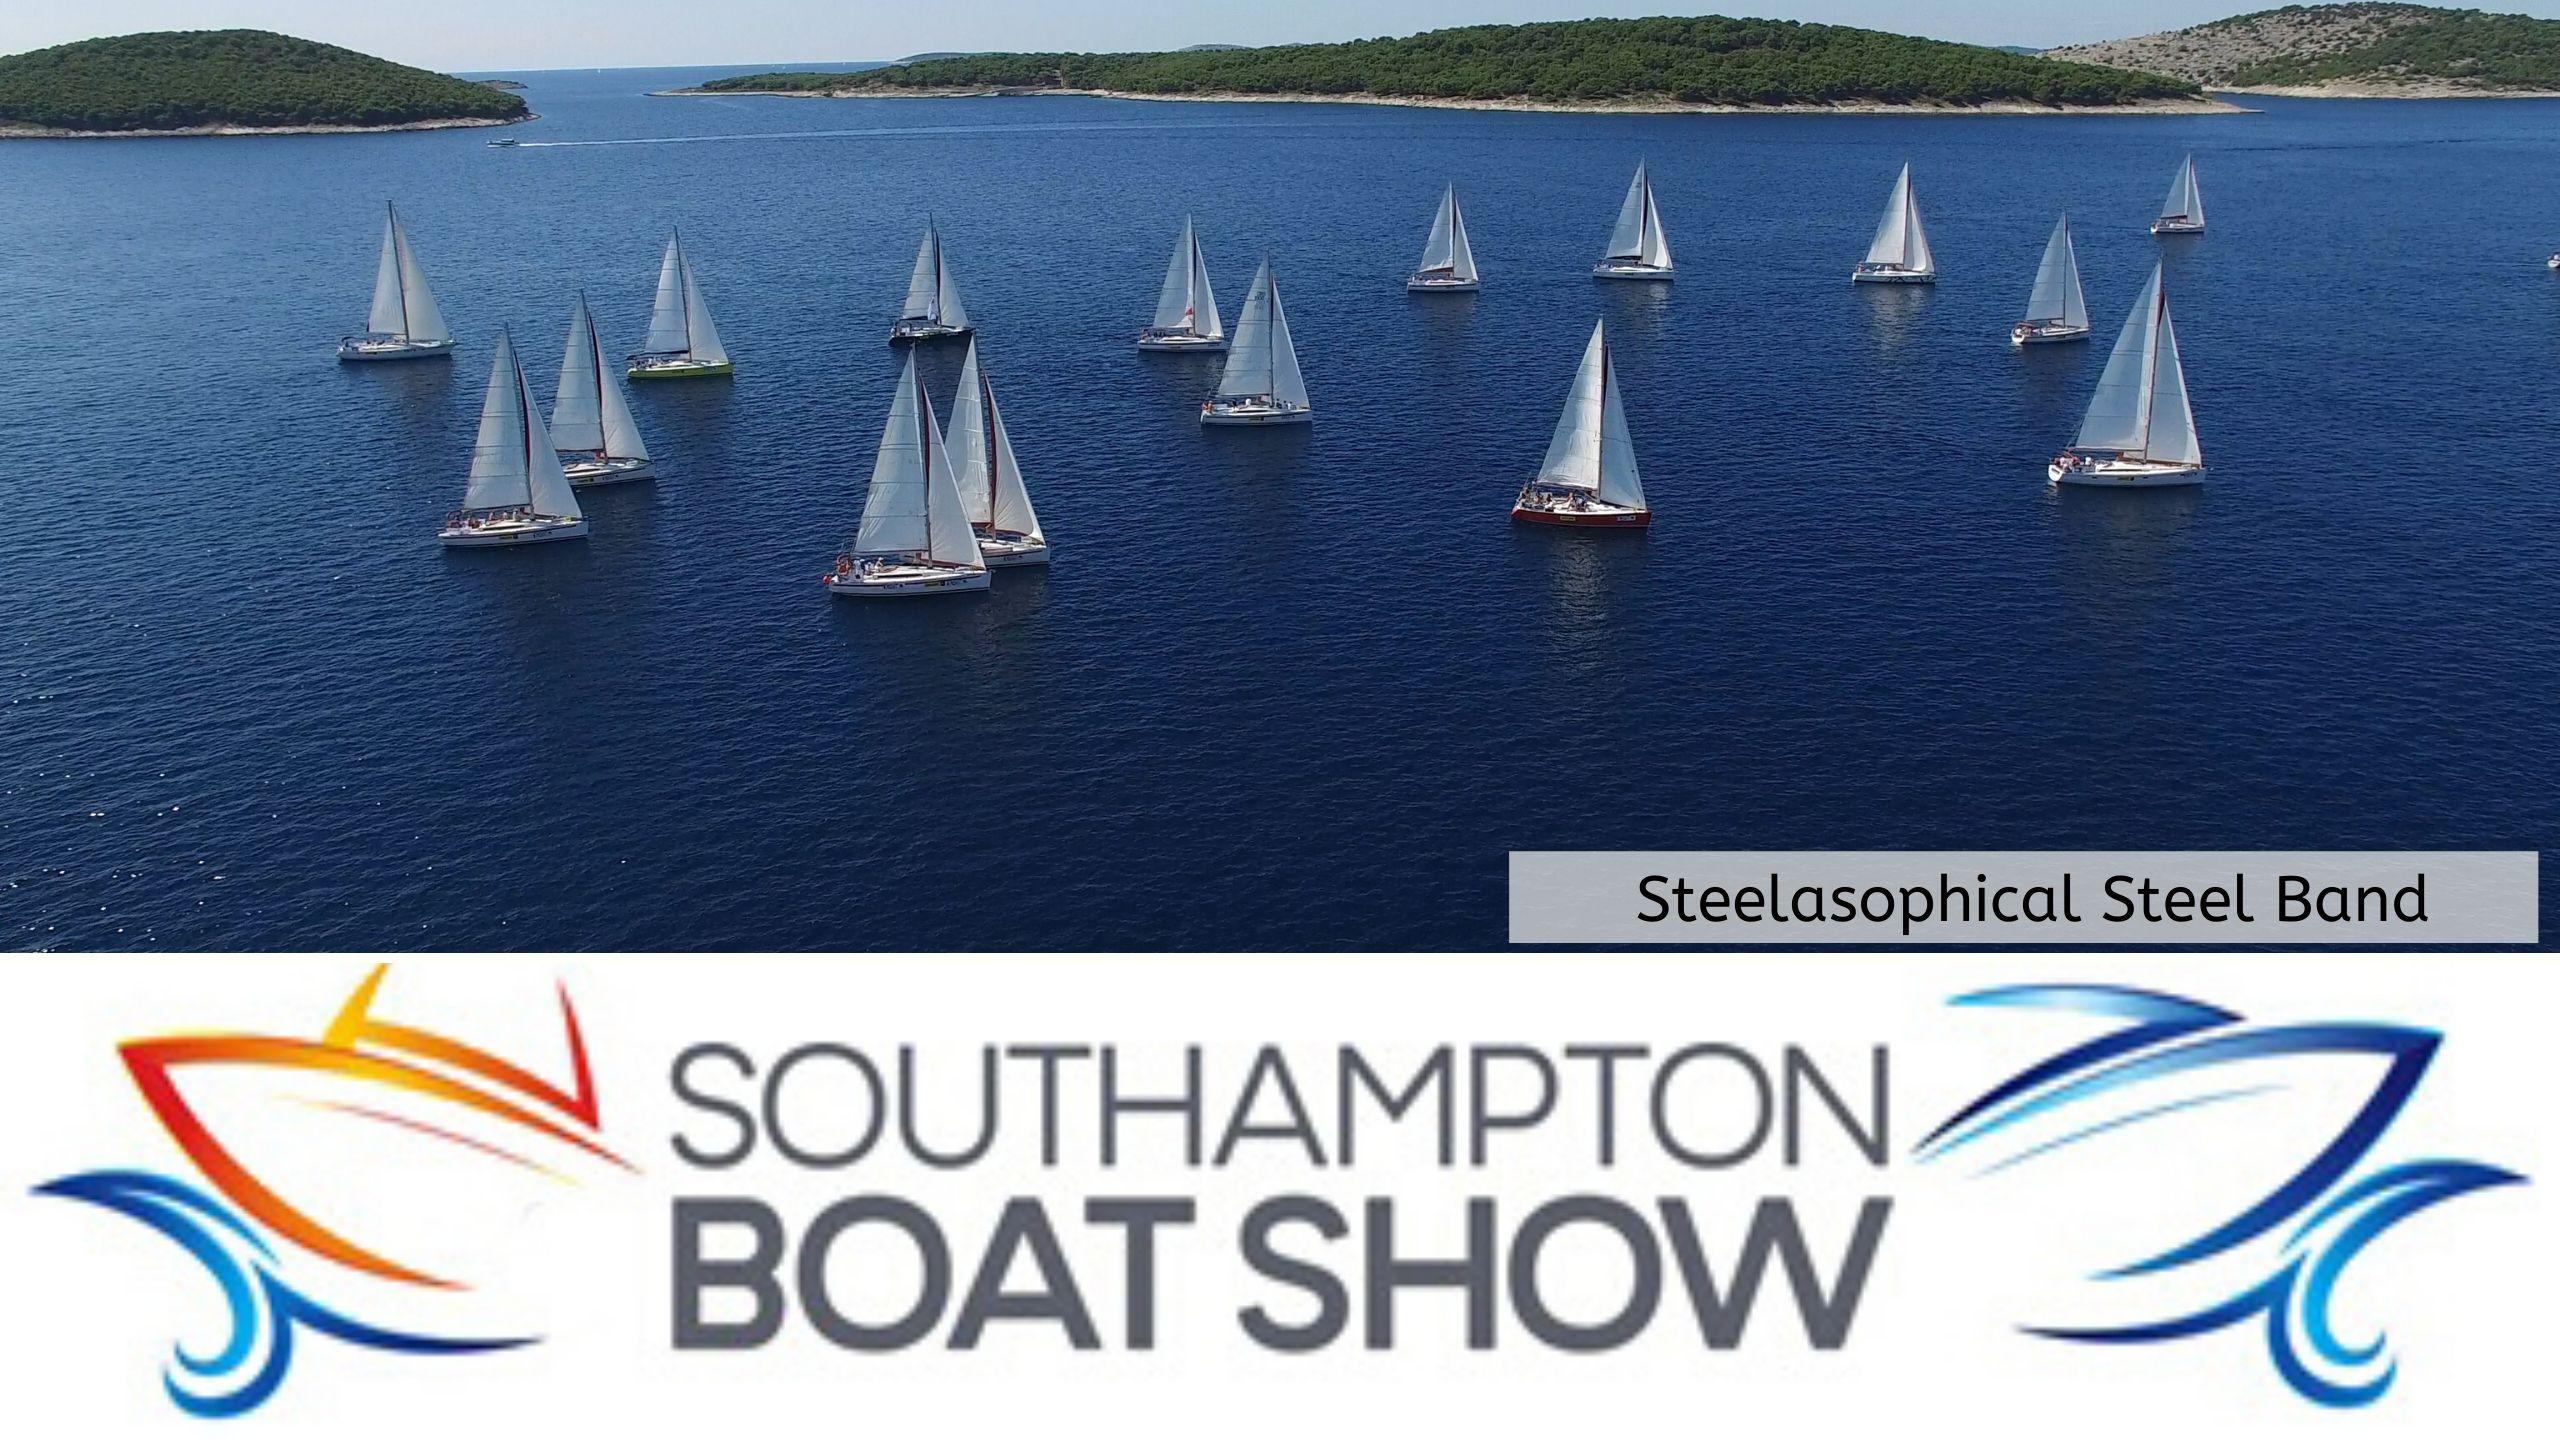 Steelasophical Steel Band Southampton Boat Show Yacht Market Music Stage 22